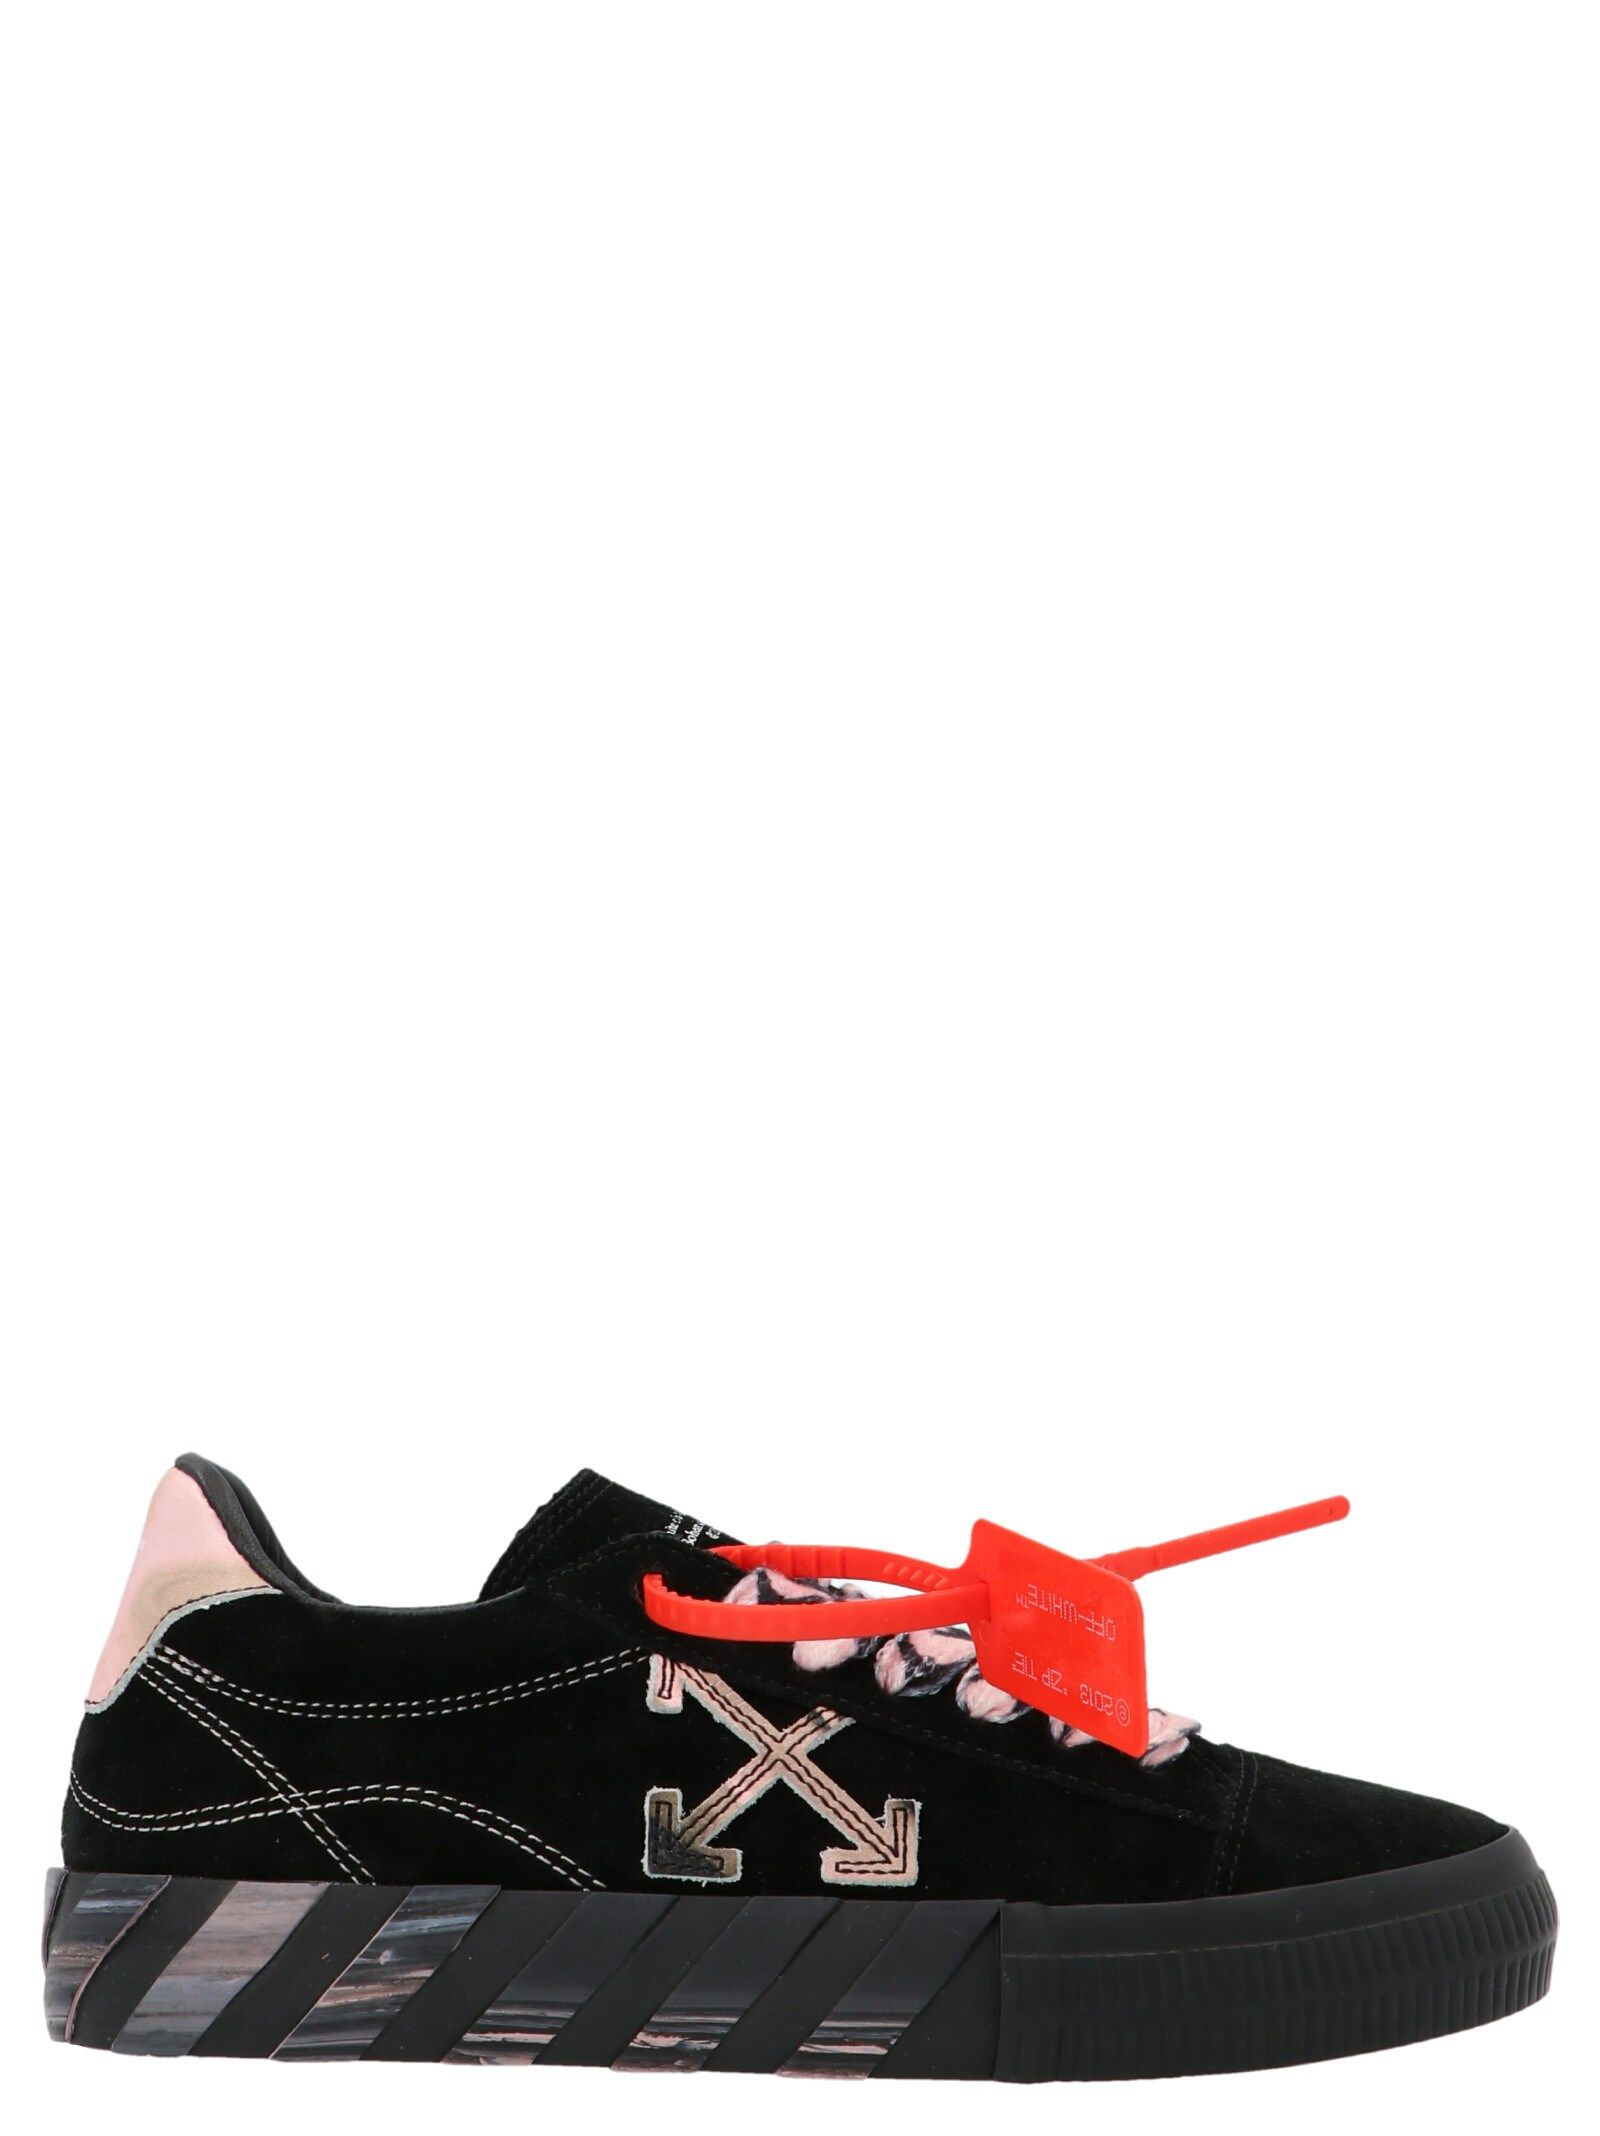 Off-White OFF-WHITE WOMEN'S BLACK OTHER MATERIALS SNEAKERS